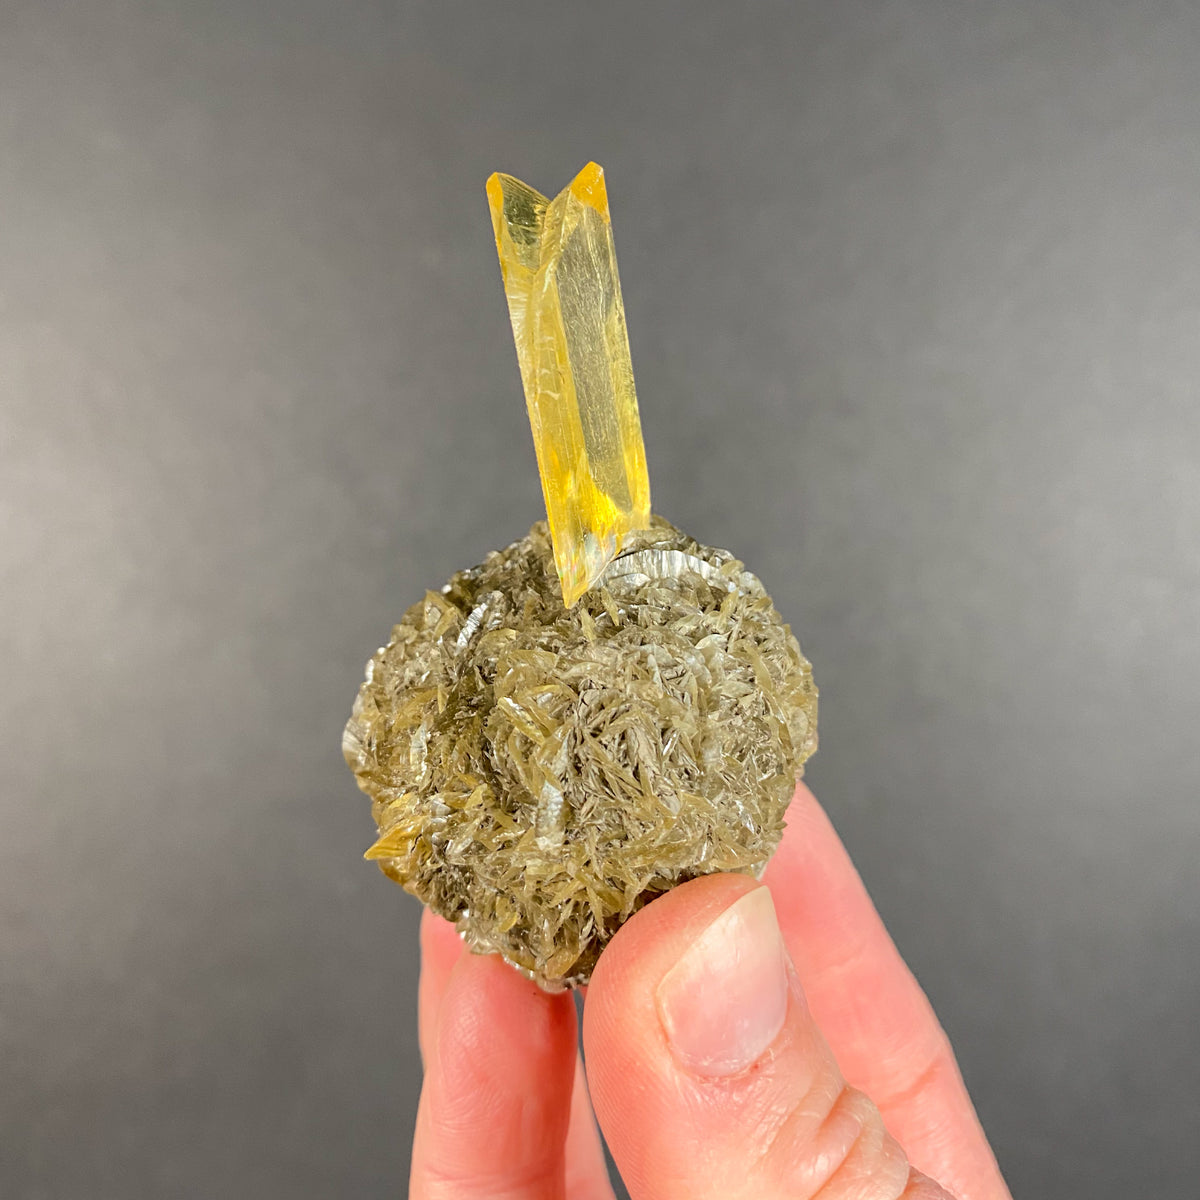 Large Yellow Selenite Crystal on Selenite Nodule from Manitoba, Canada